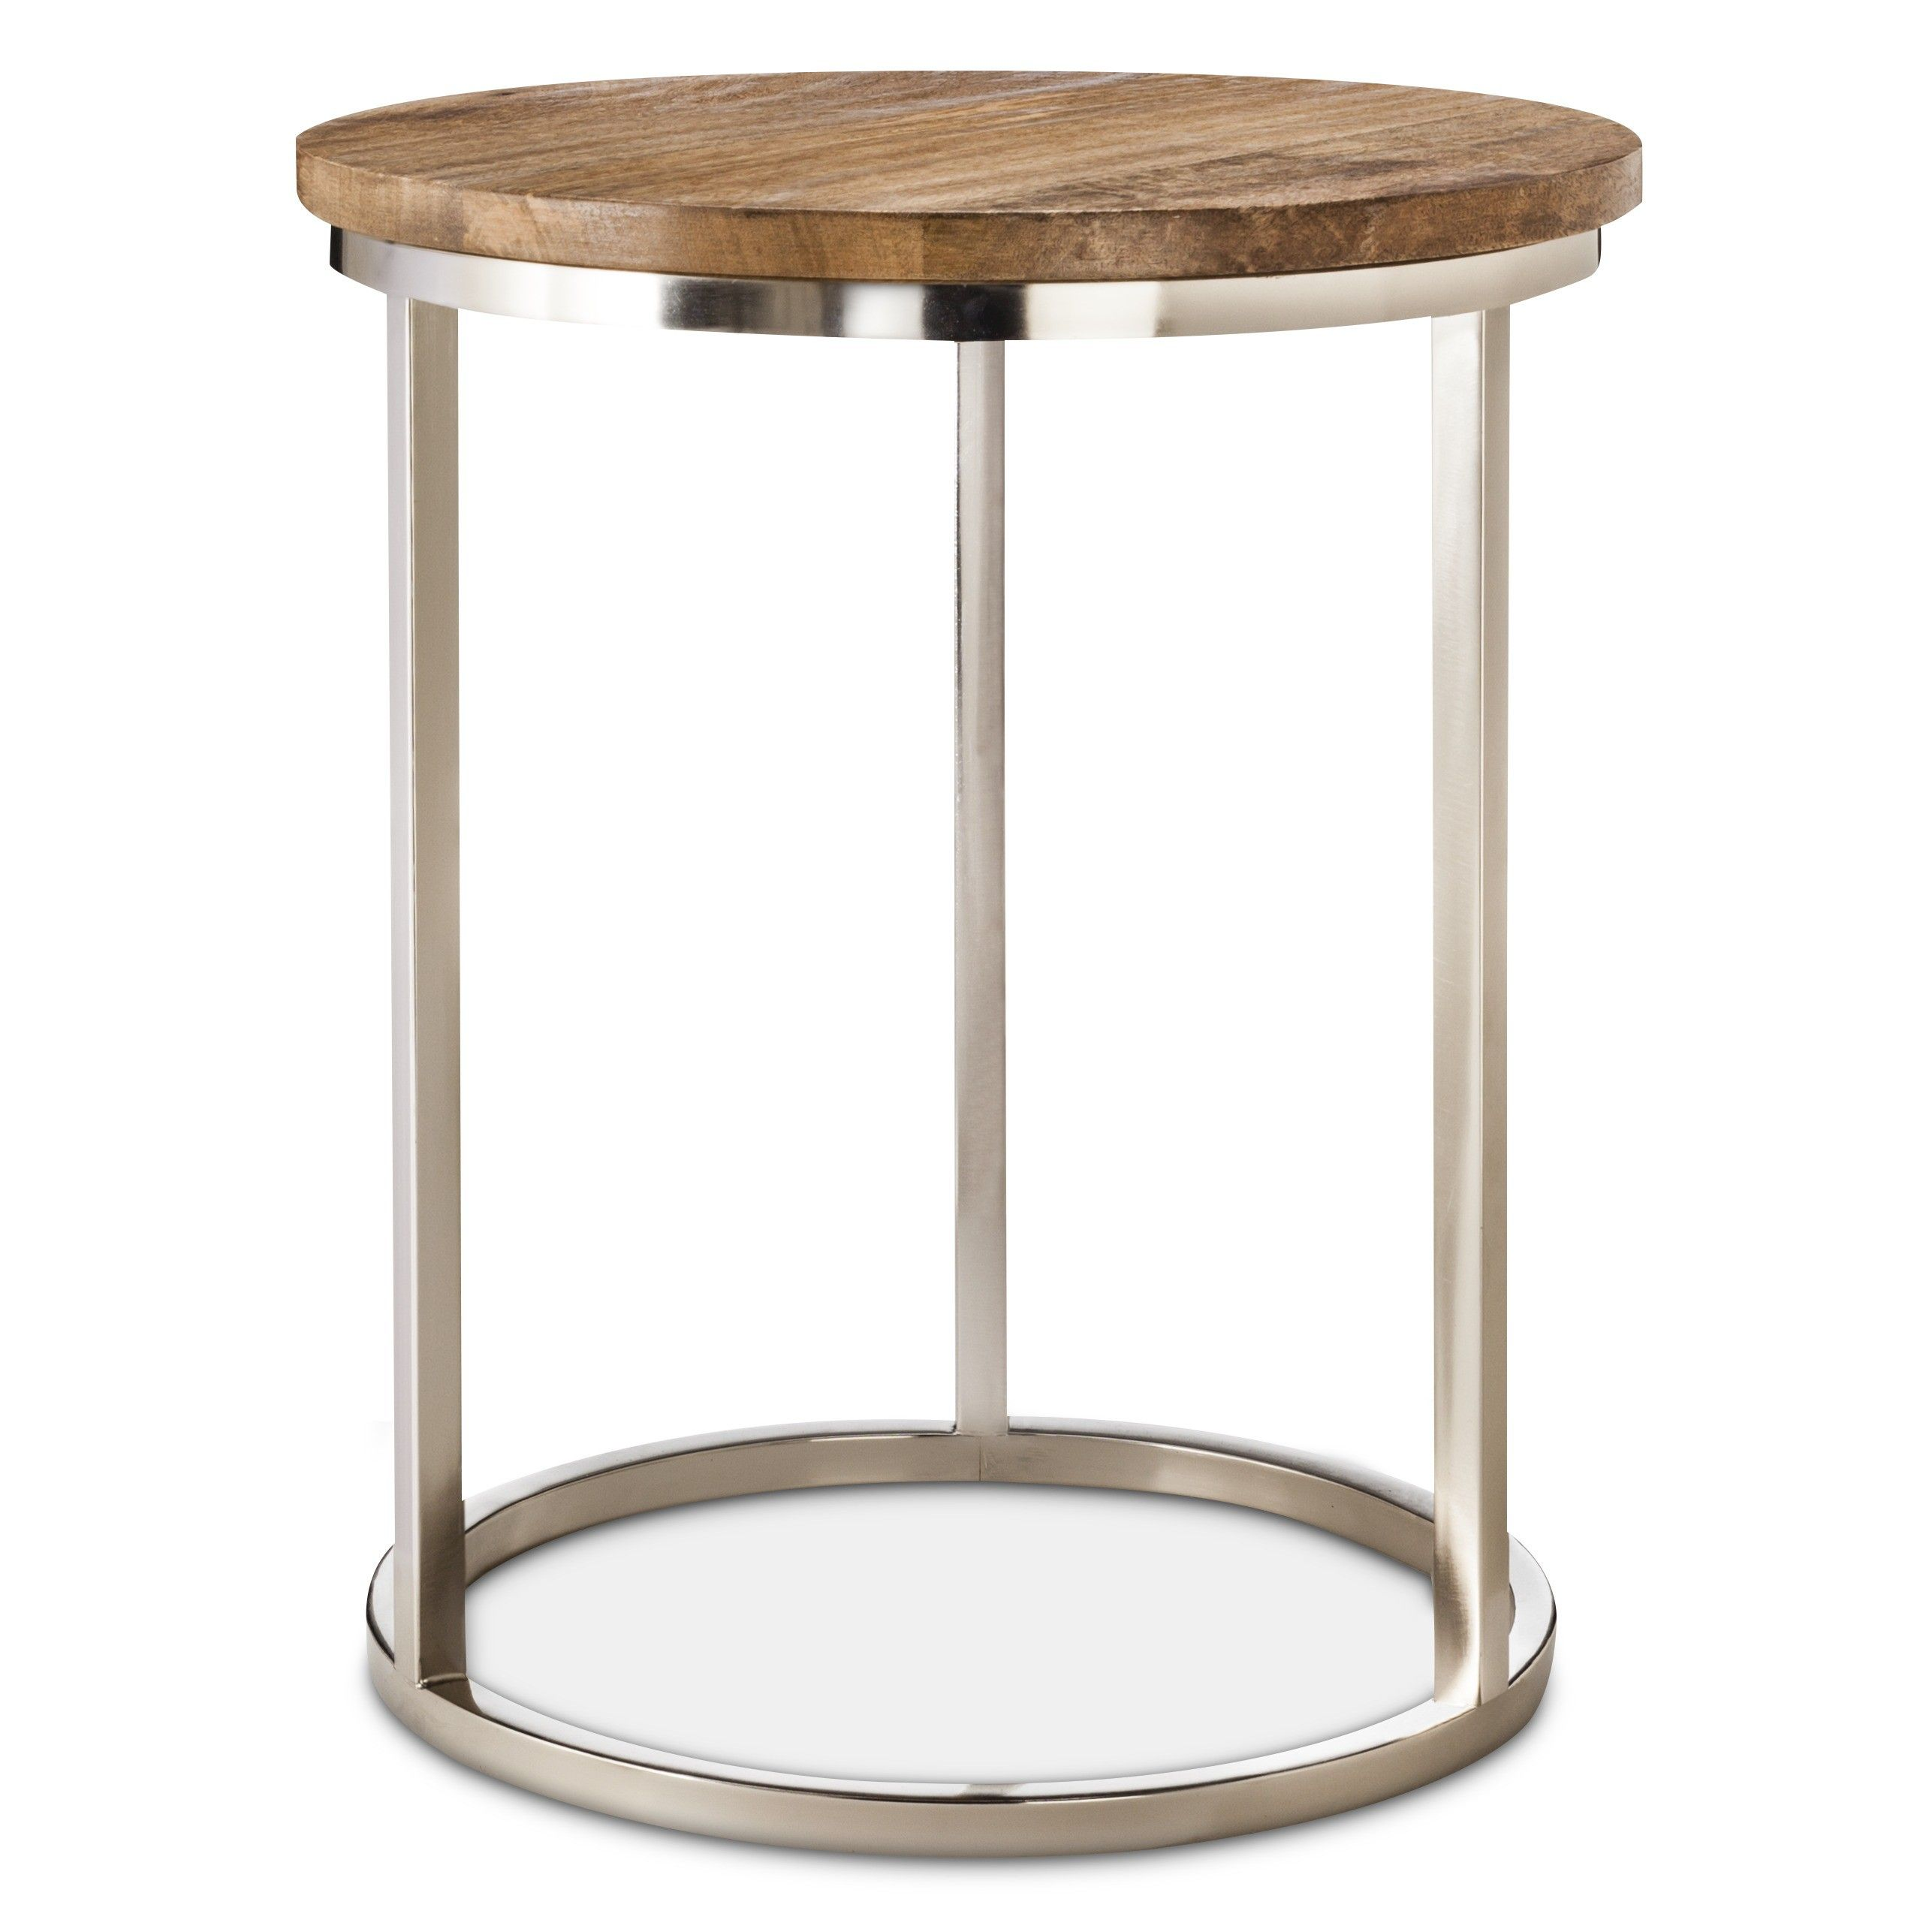 side table for glider threshold metal accent with wood top marble target oval end and iron coffee sets ethan allen rugs wooden bedside lamps black gloss nest tables round drawer